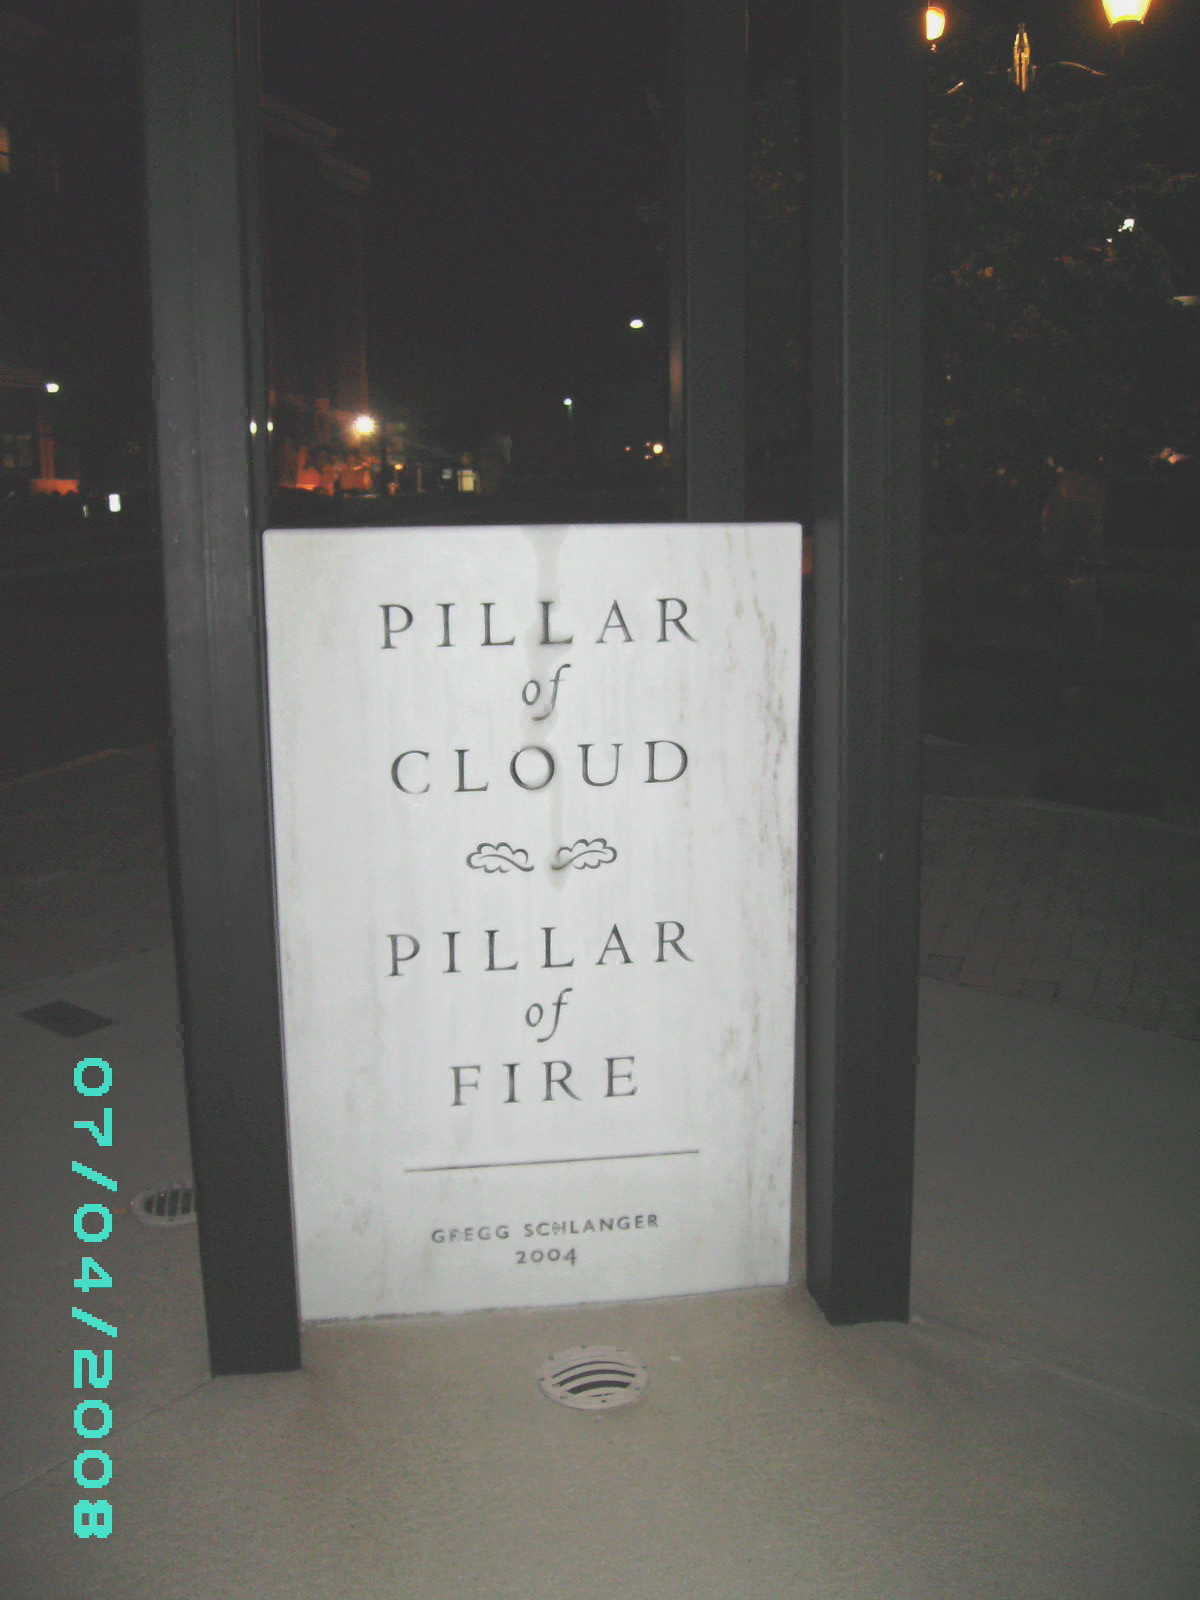 The Pillar of Clouds, Pillar of Fire Memorial